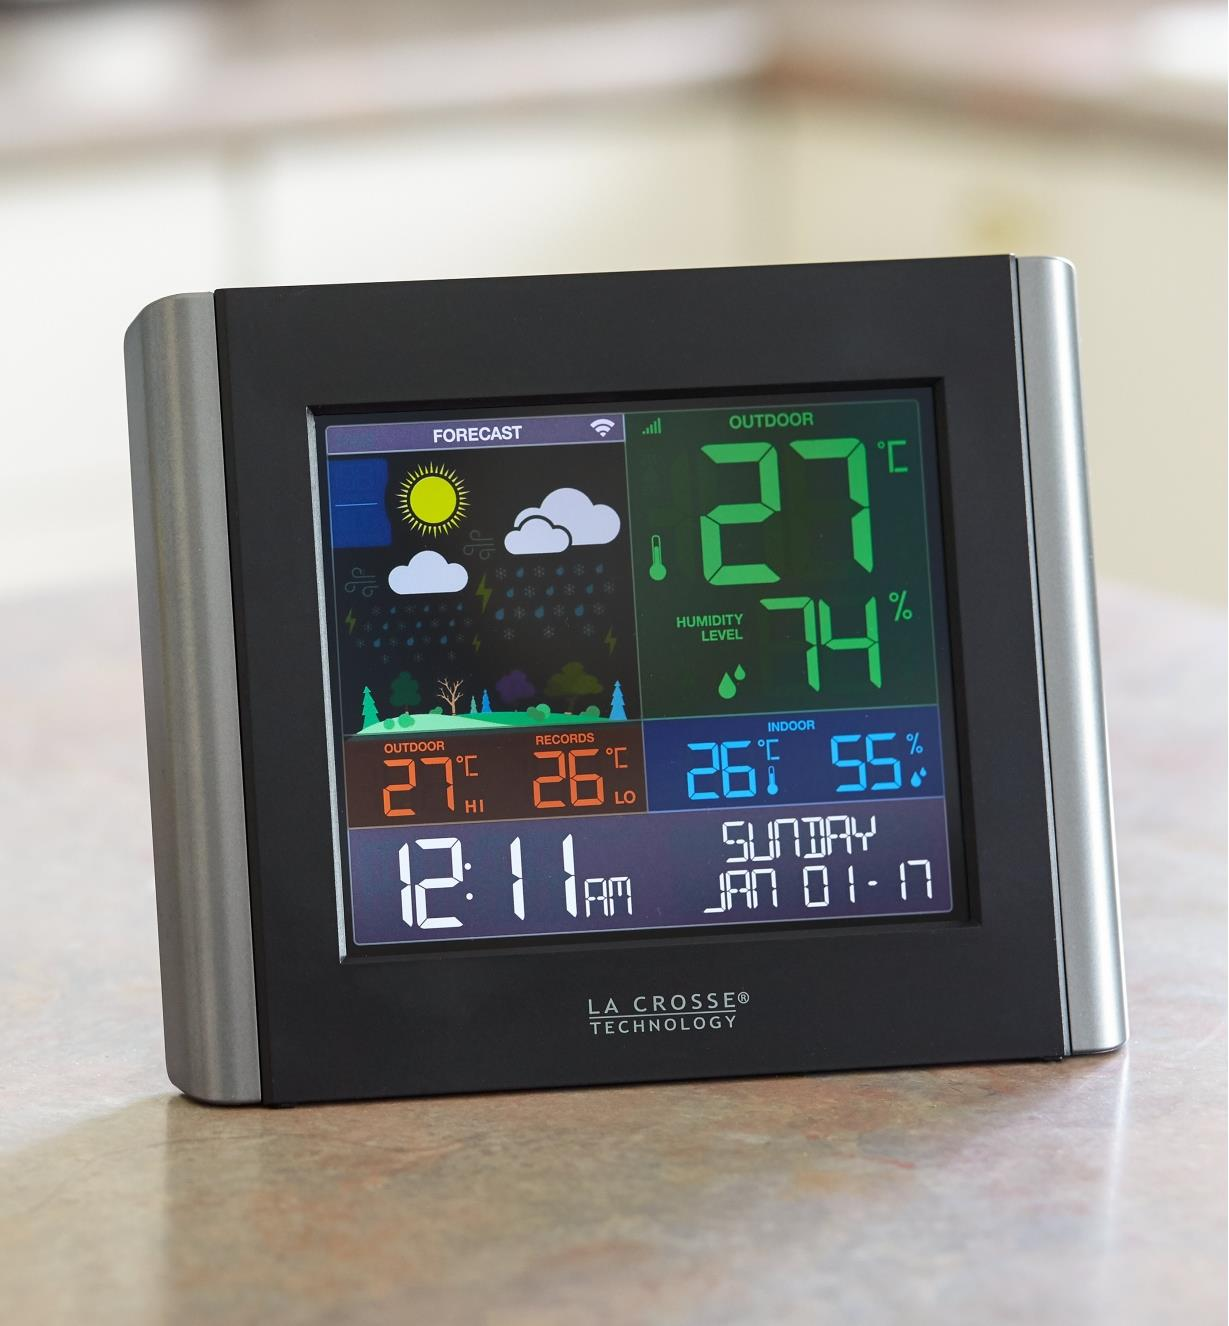 Wi-Fi weather station display sitting on a countertop